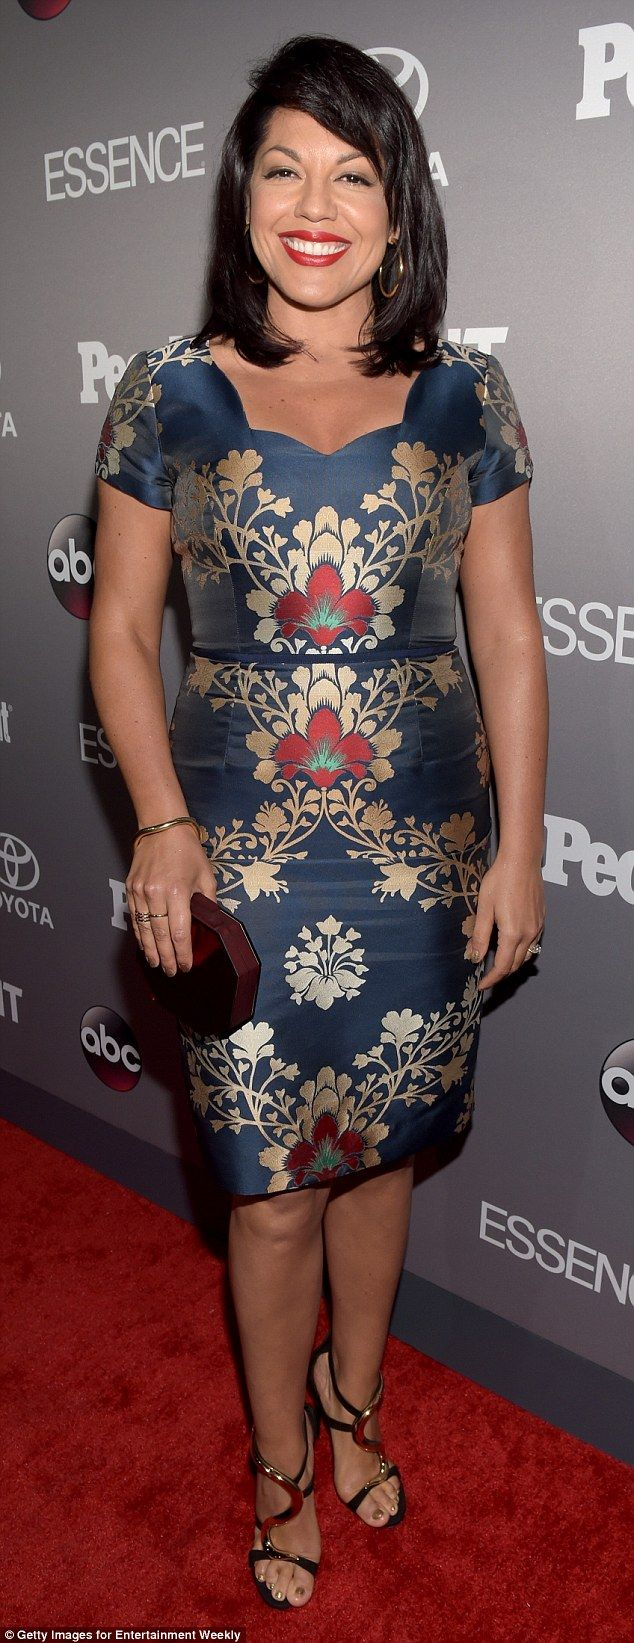 Simple and classy: Sara Ramirez, 40, of Grey's Anatomy went with a classic floral print dr...